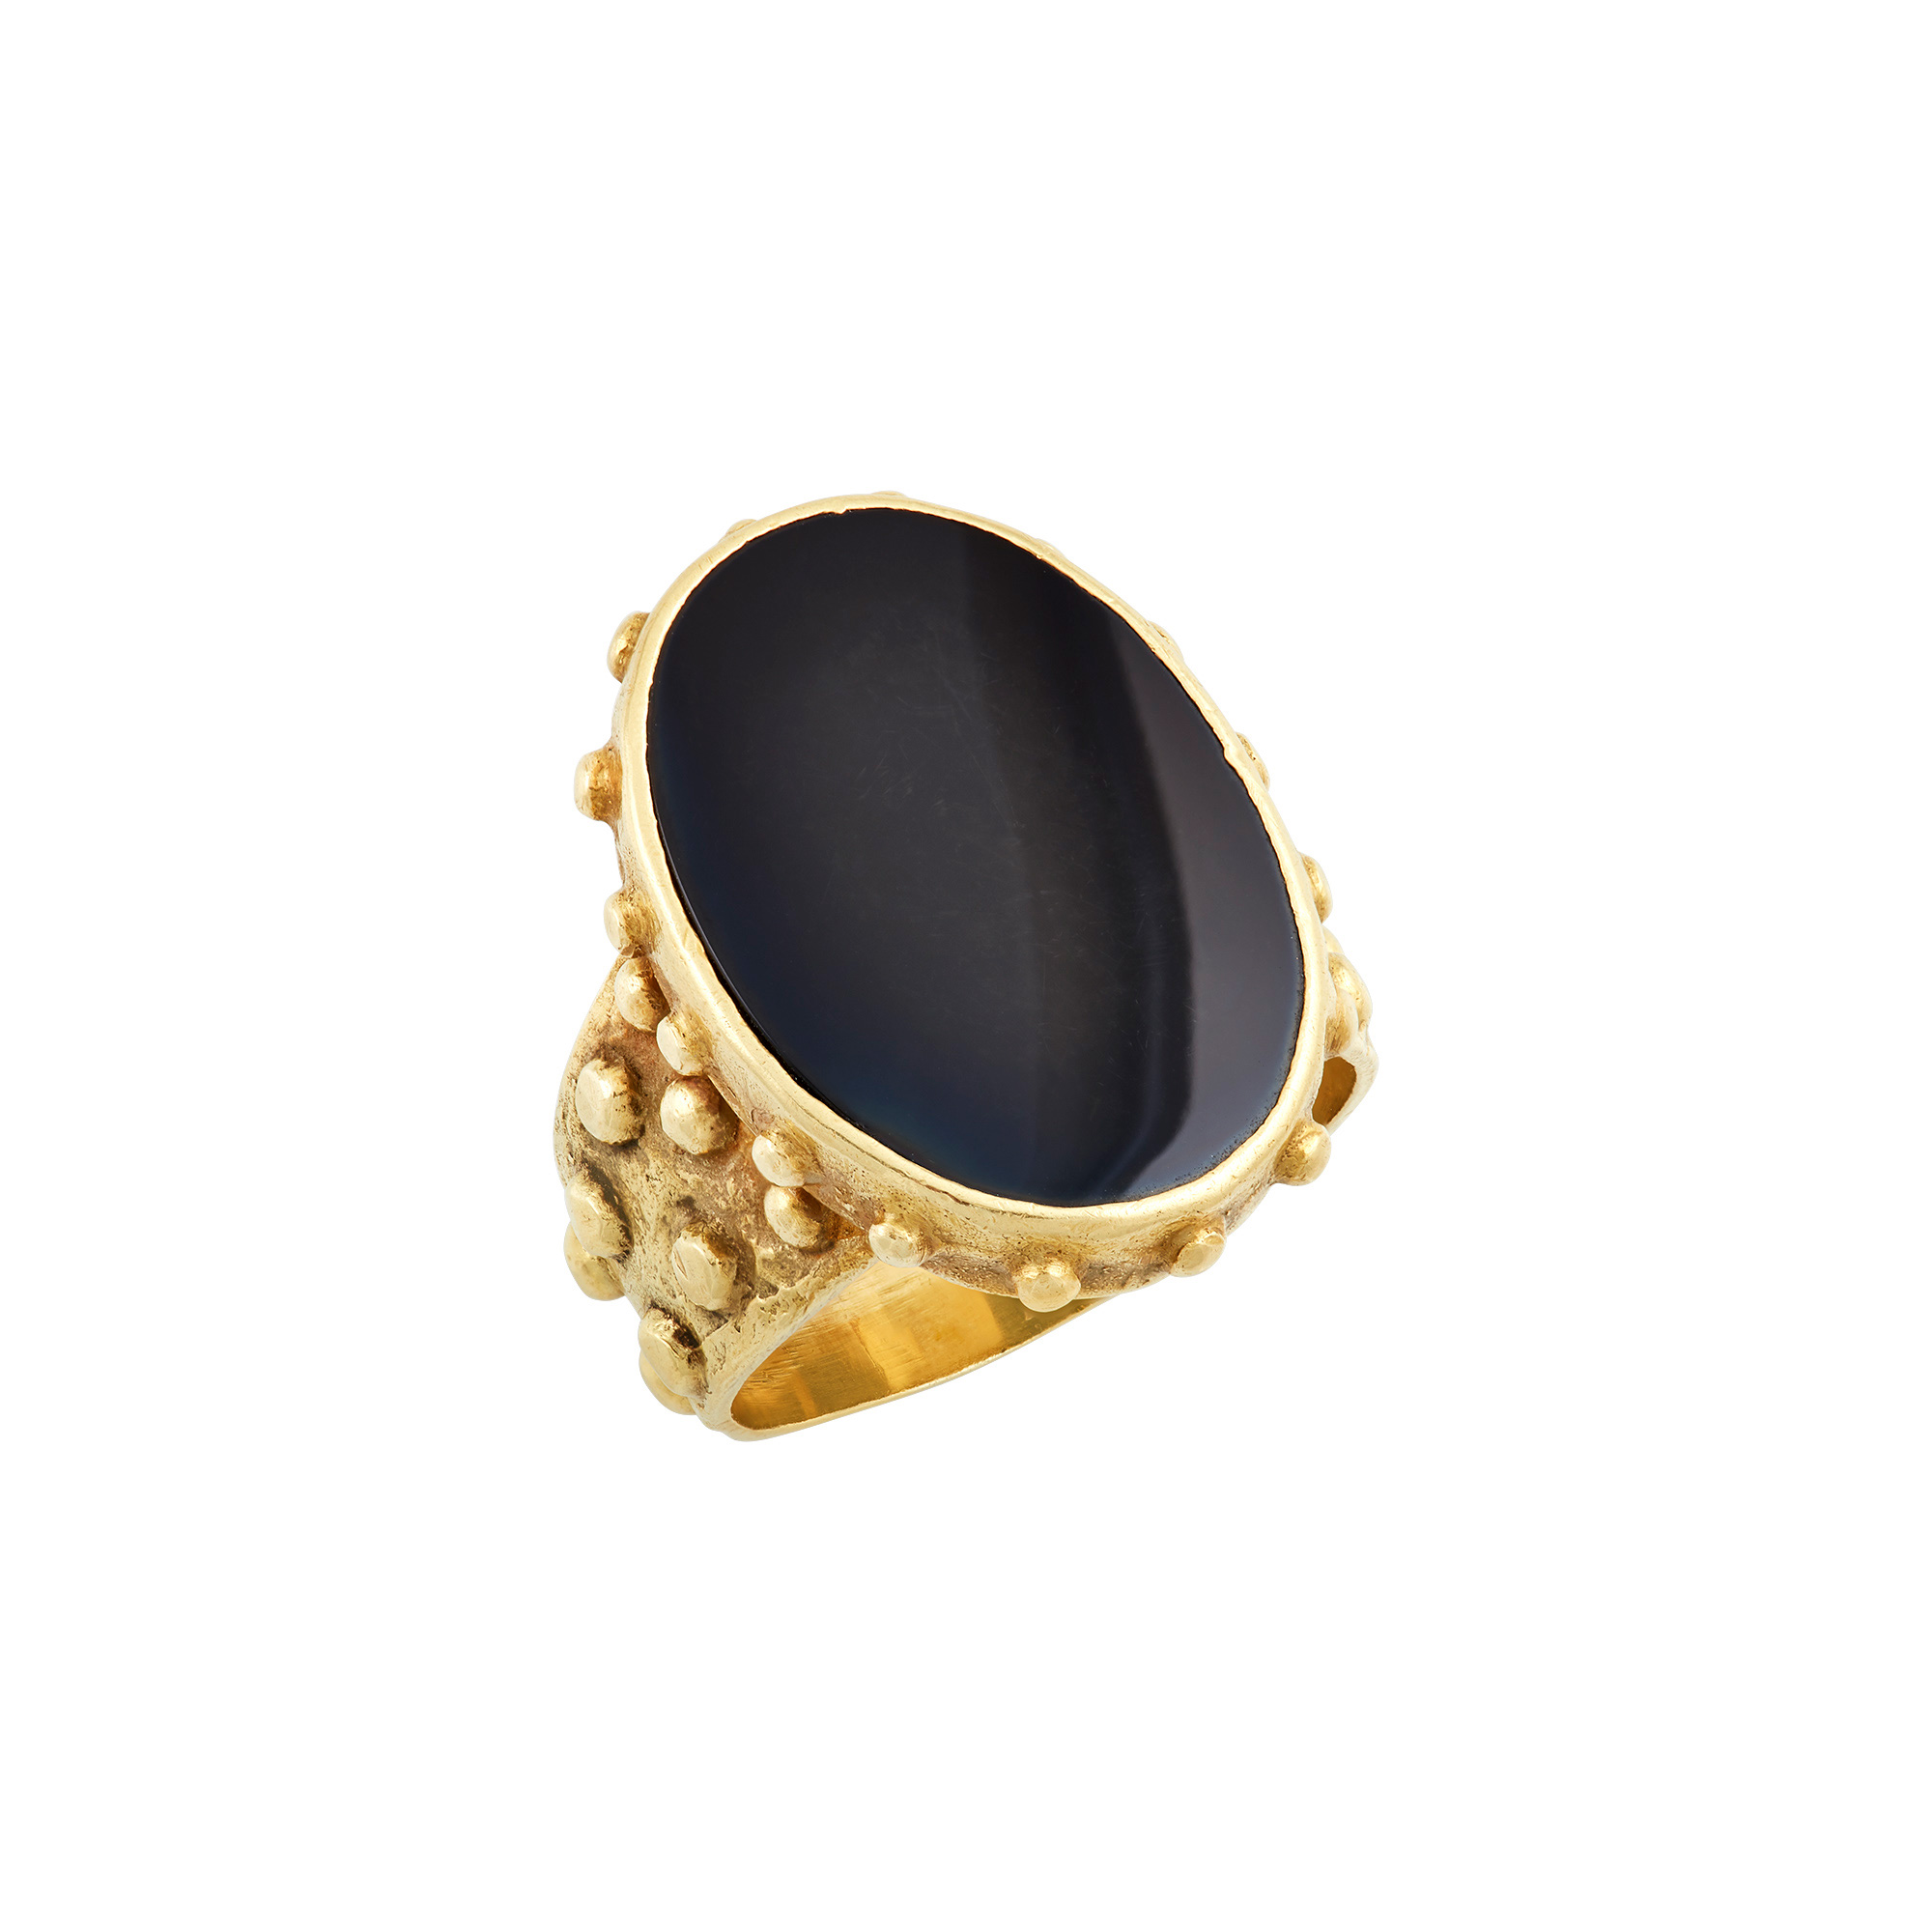 Lot image - Ed Wiener Gentlemans Modernist Gold and Black Onyx Ring